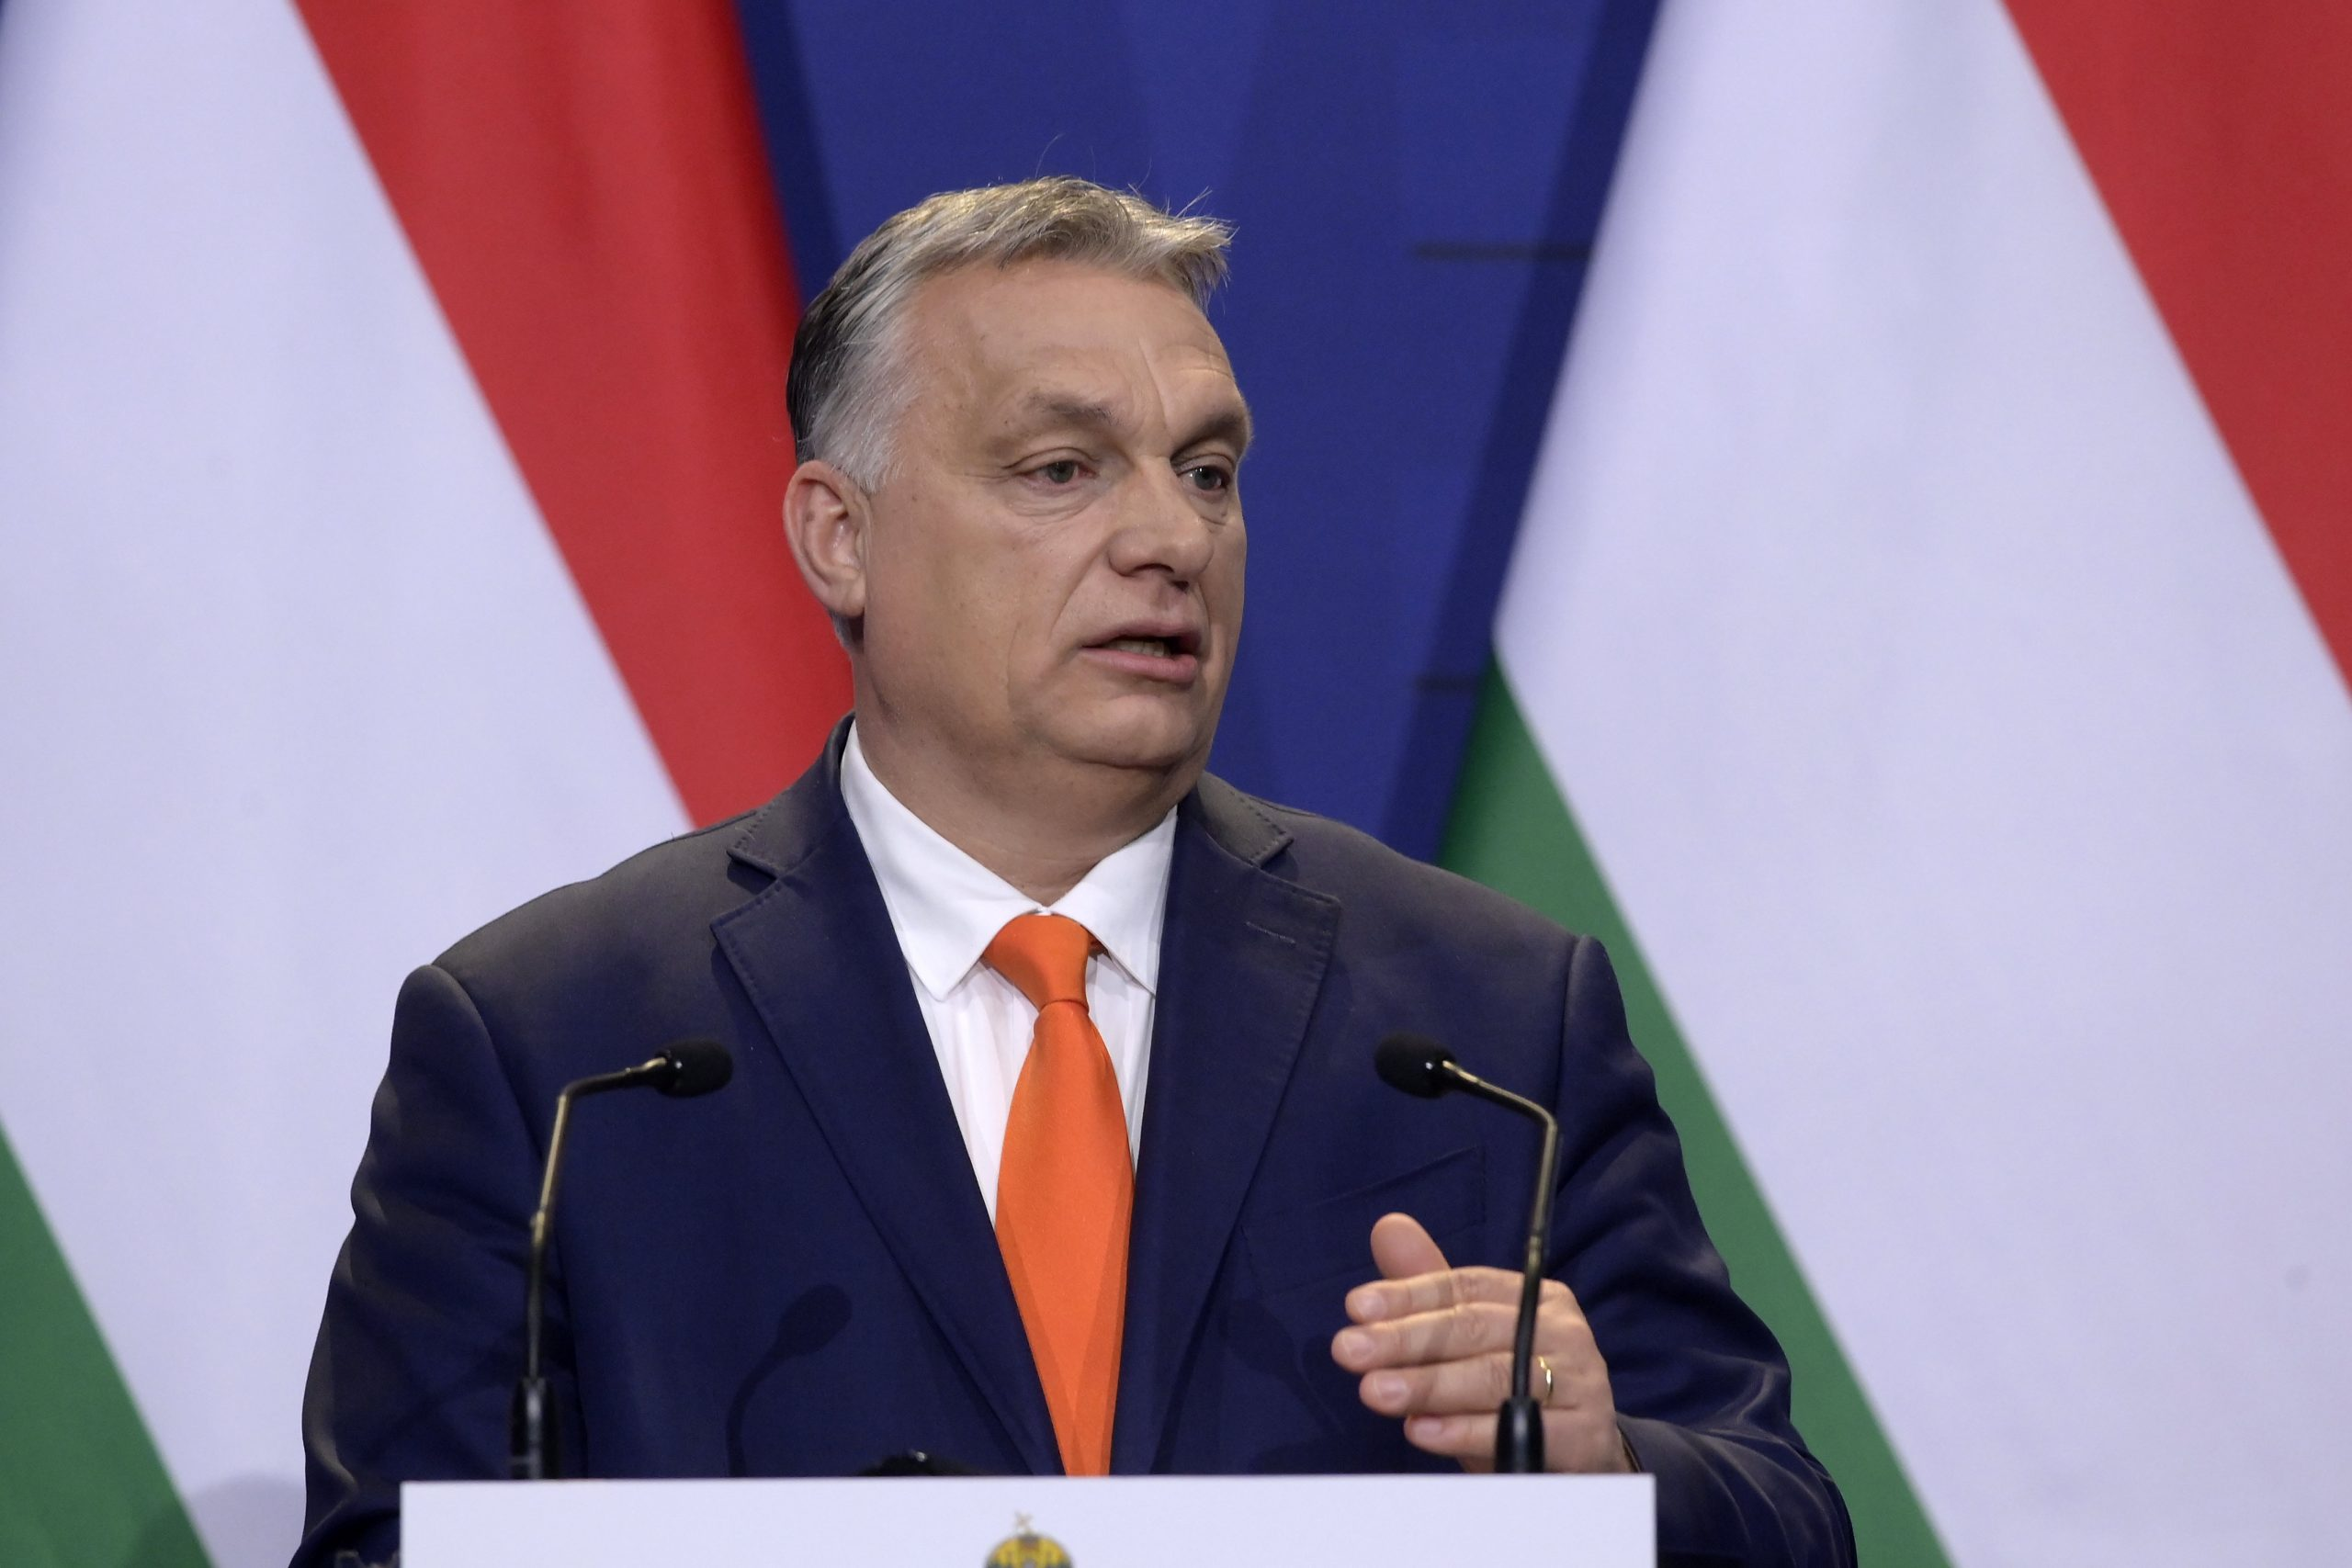 Orbán: 'Pandemic, migration, Gyurcsány greatest threats to Hungary'